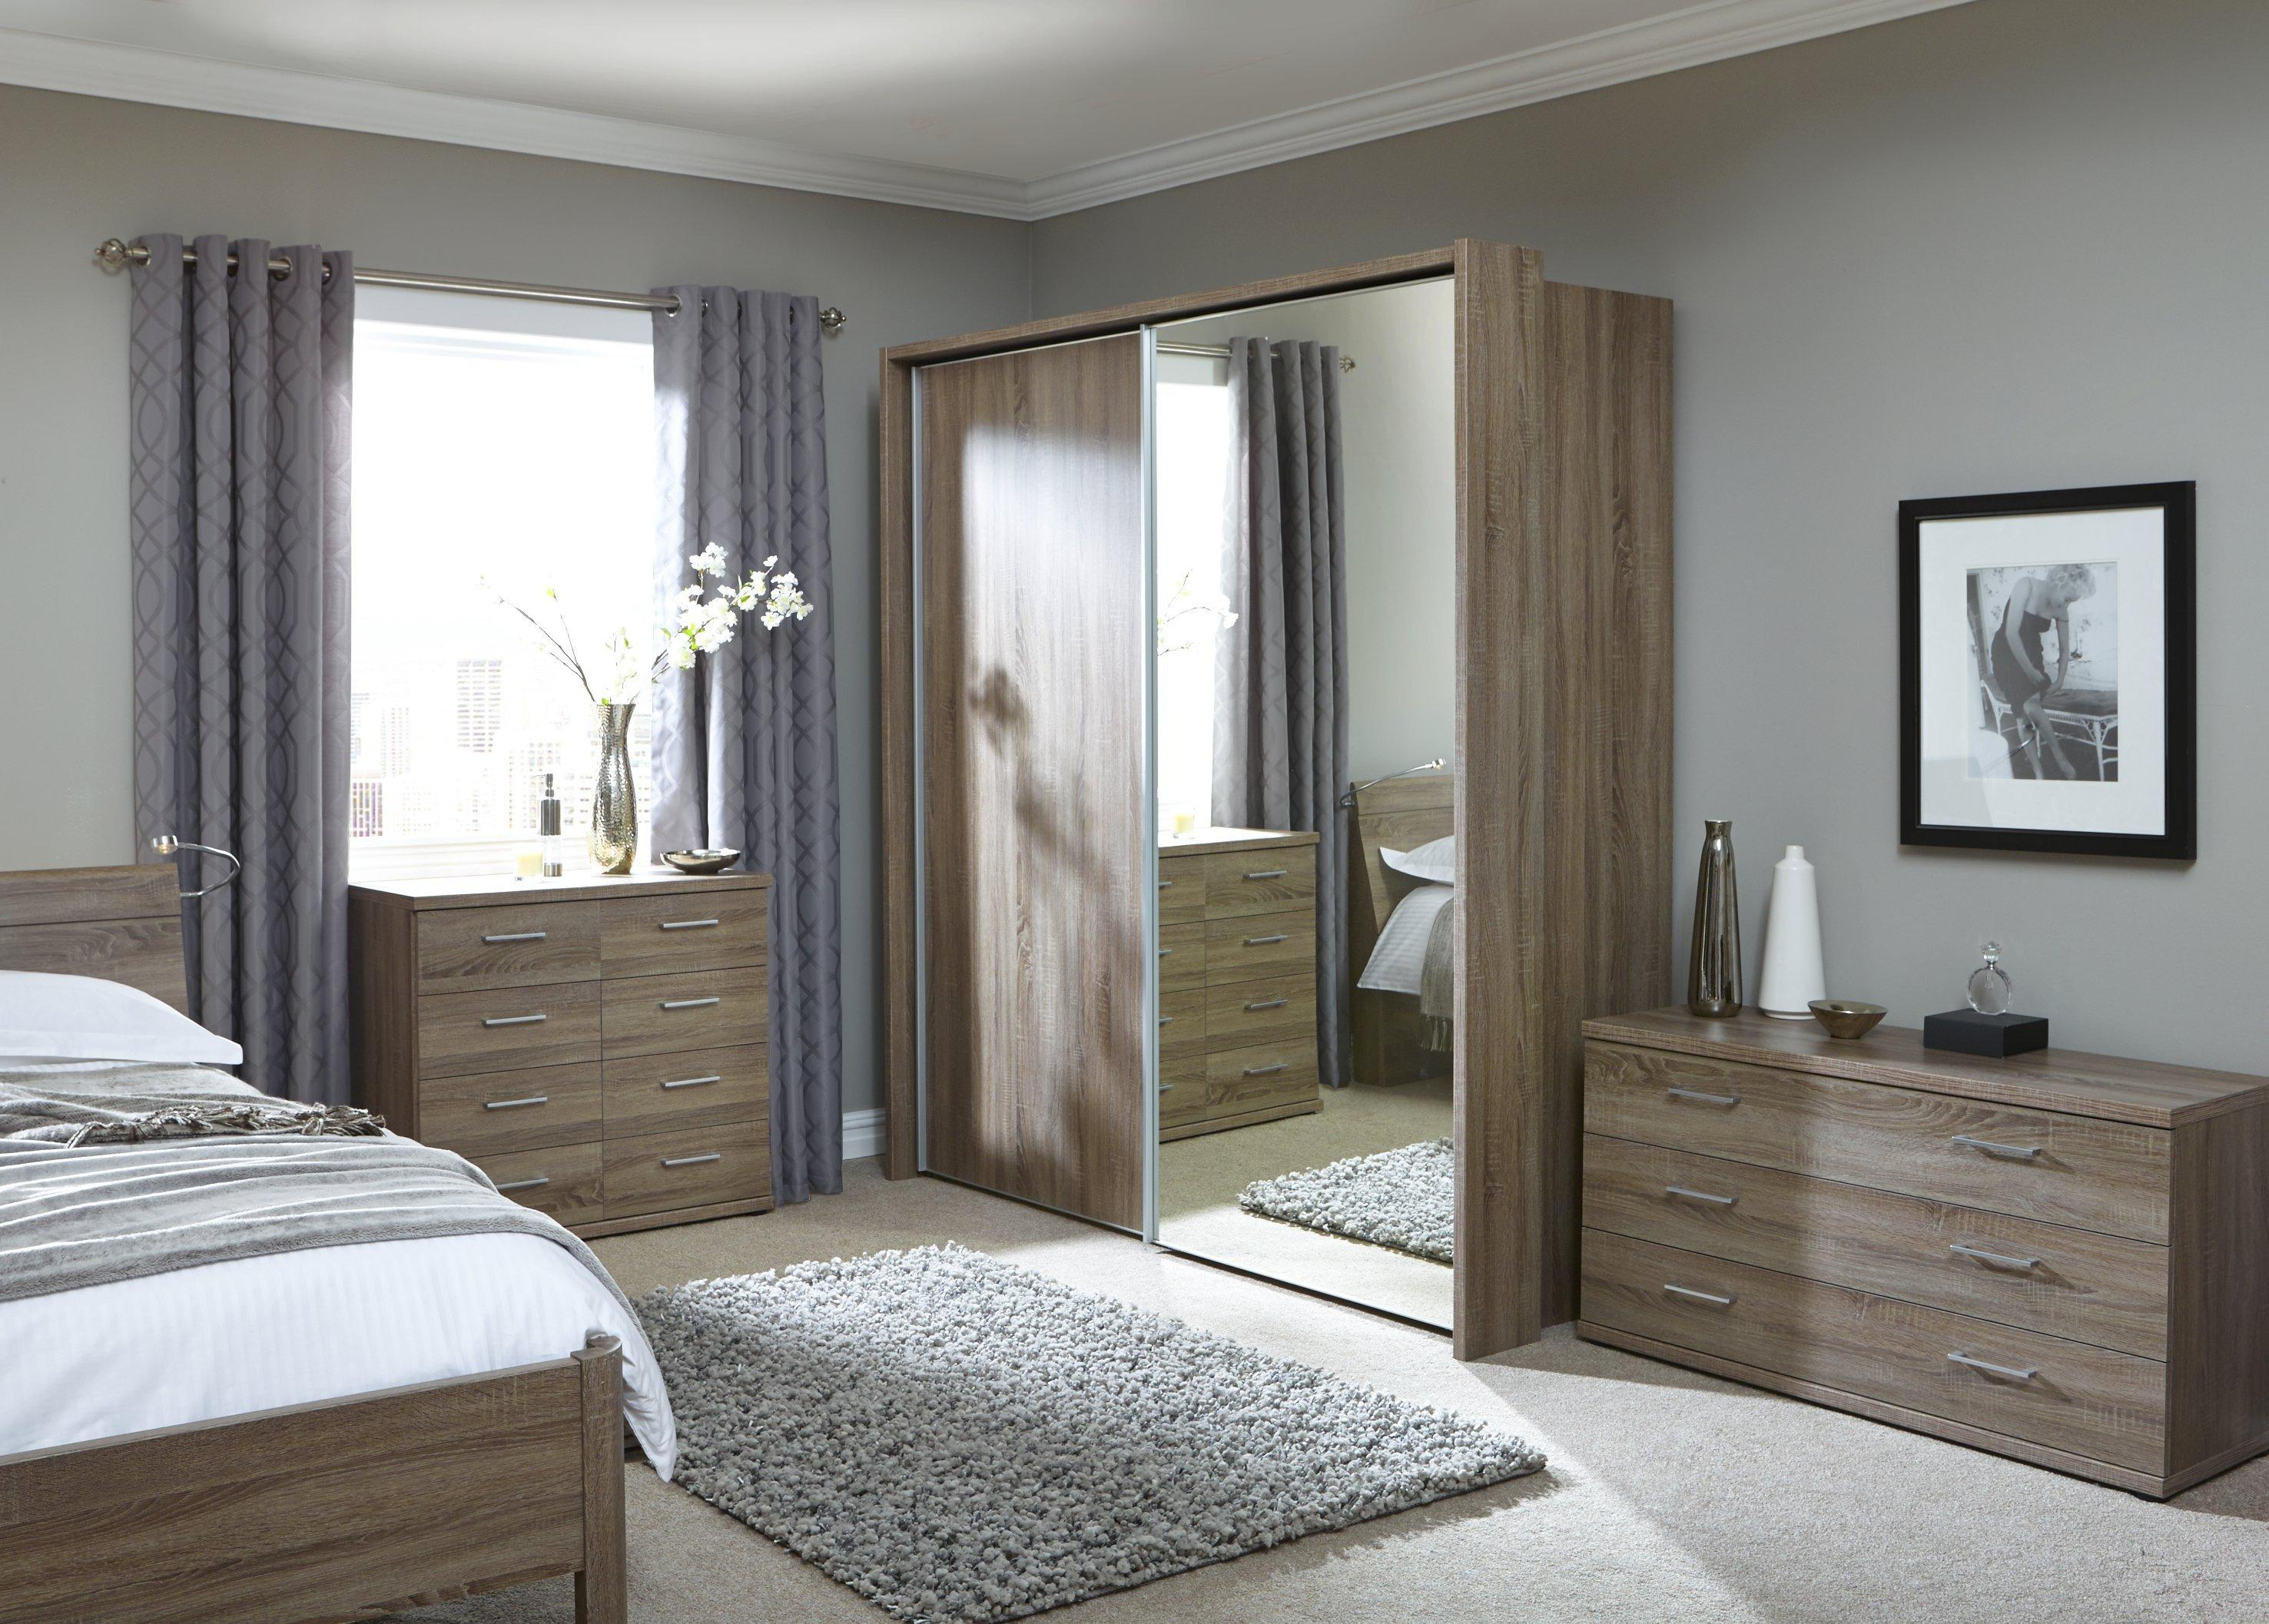 Bedroom Furniture | Modern Bedroom Furniture With Free Delivery ...